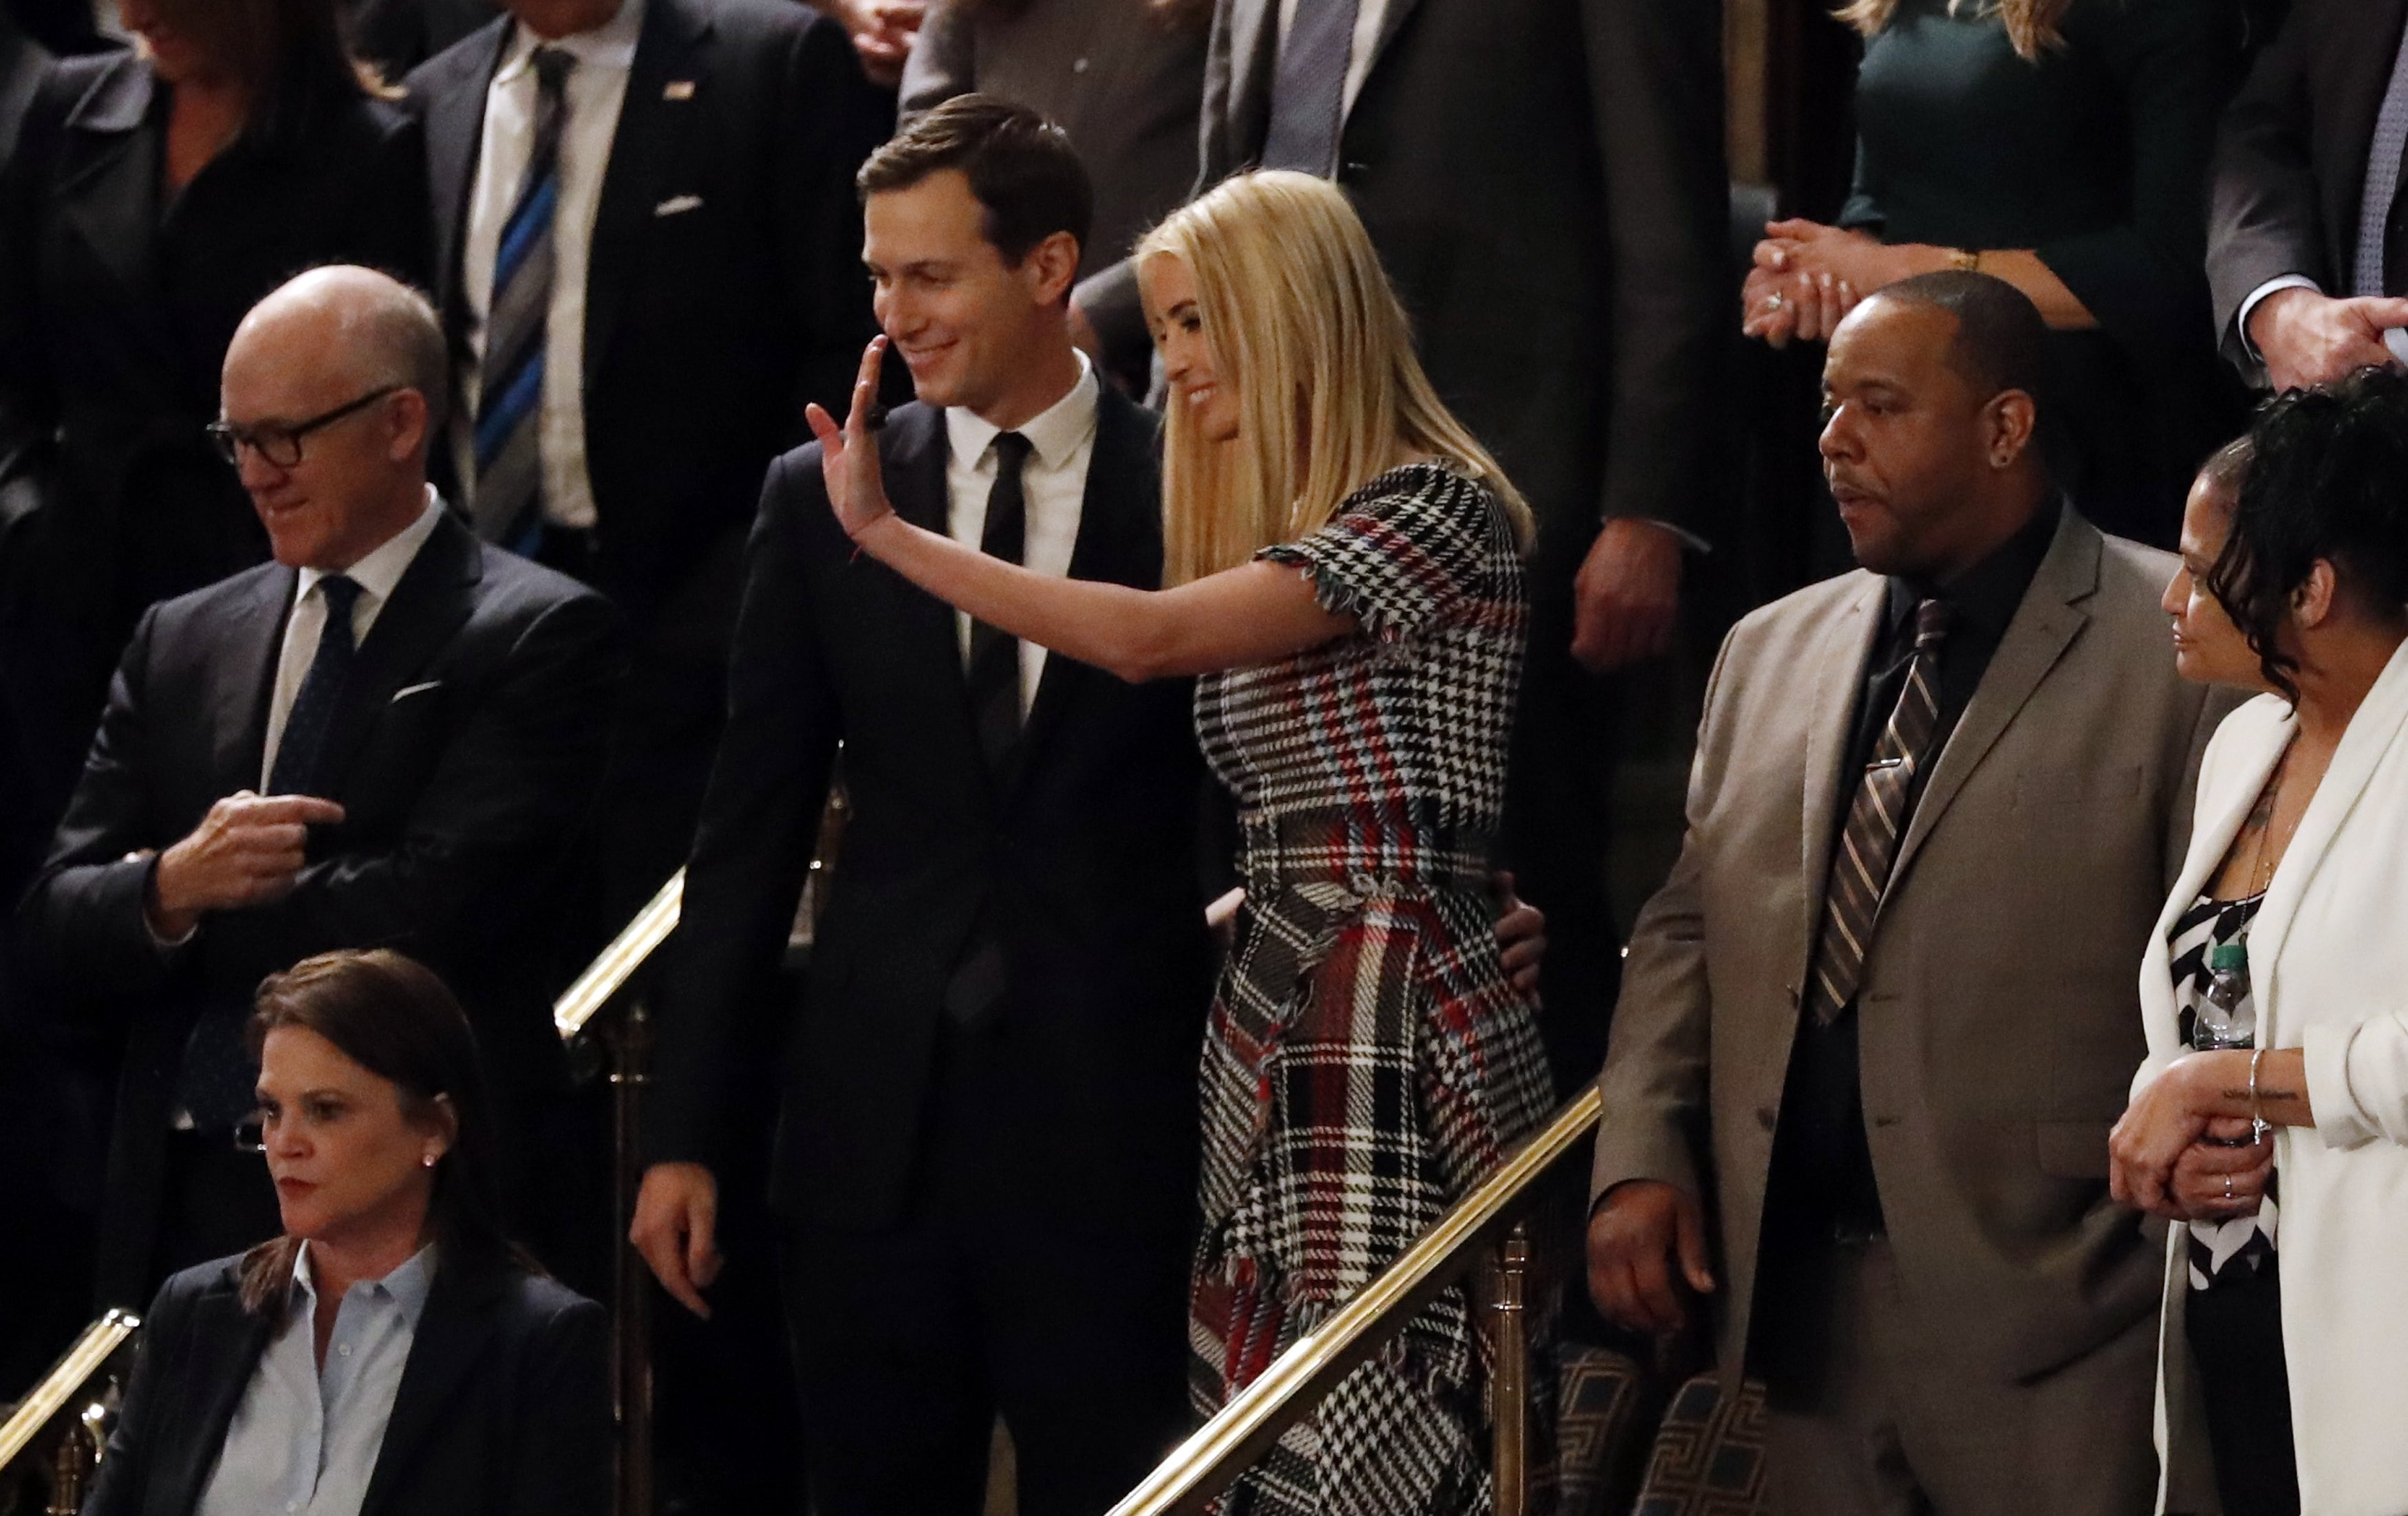 Jared Kushner and Ivanka Trump arrive for President Trump's State of the Union address in Washington